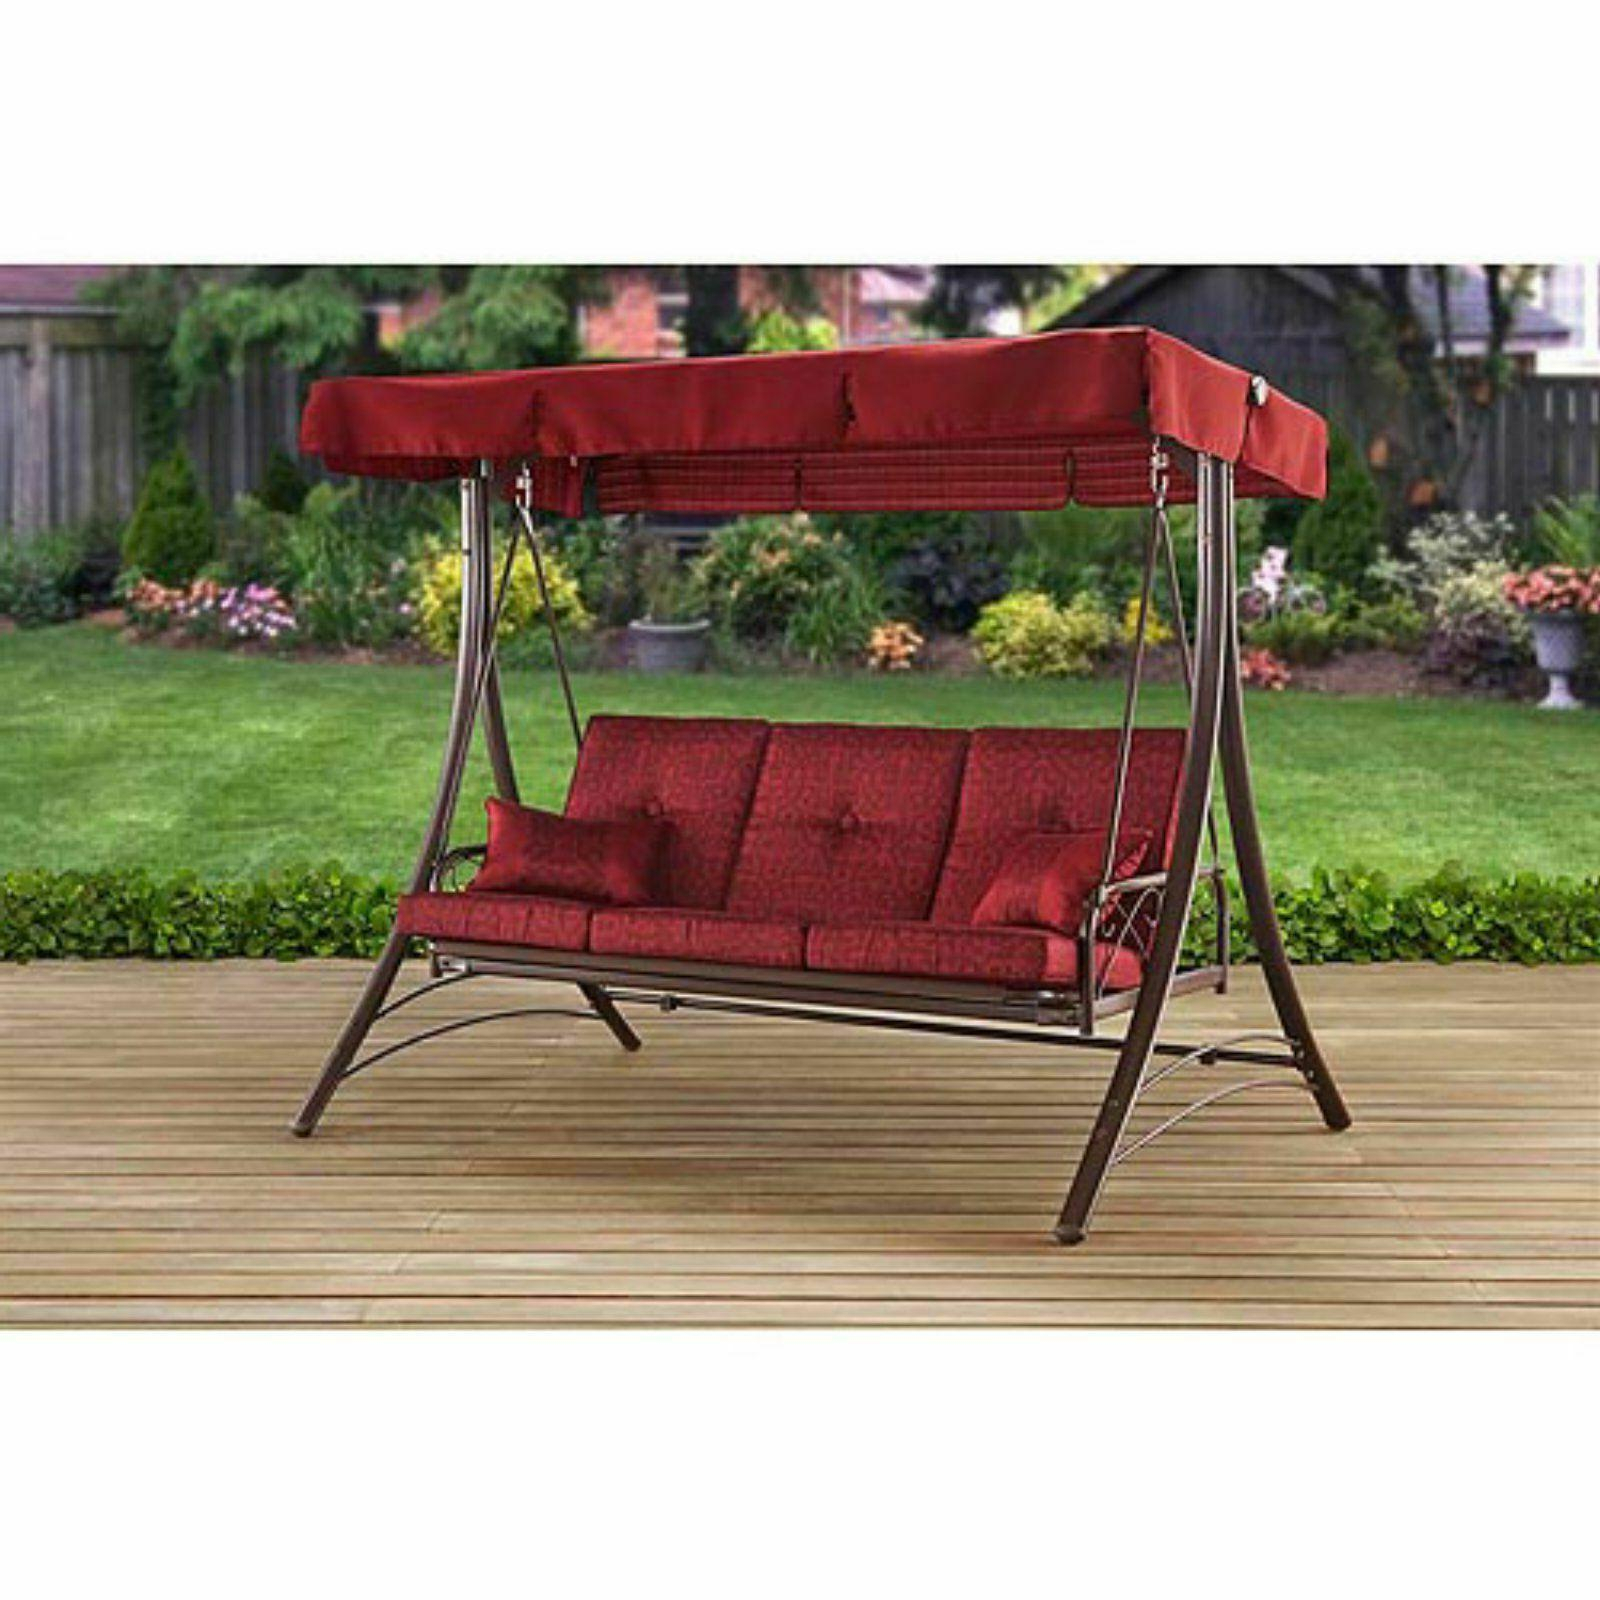 Front Porch Swing Set Outdoor Patio Swin With 2 Person Adjustable Tilt Canopy Patio Loveseat Porch Swings (View 20 of 25)